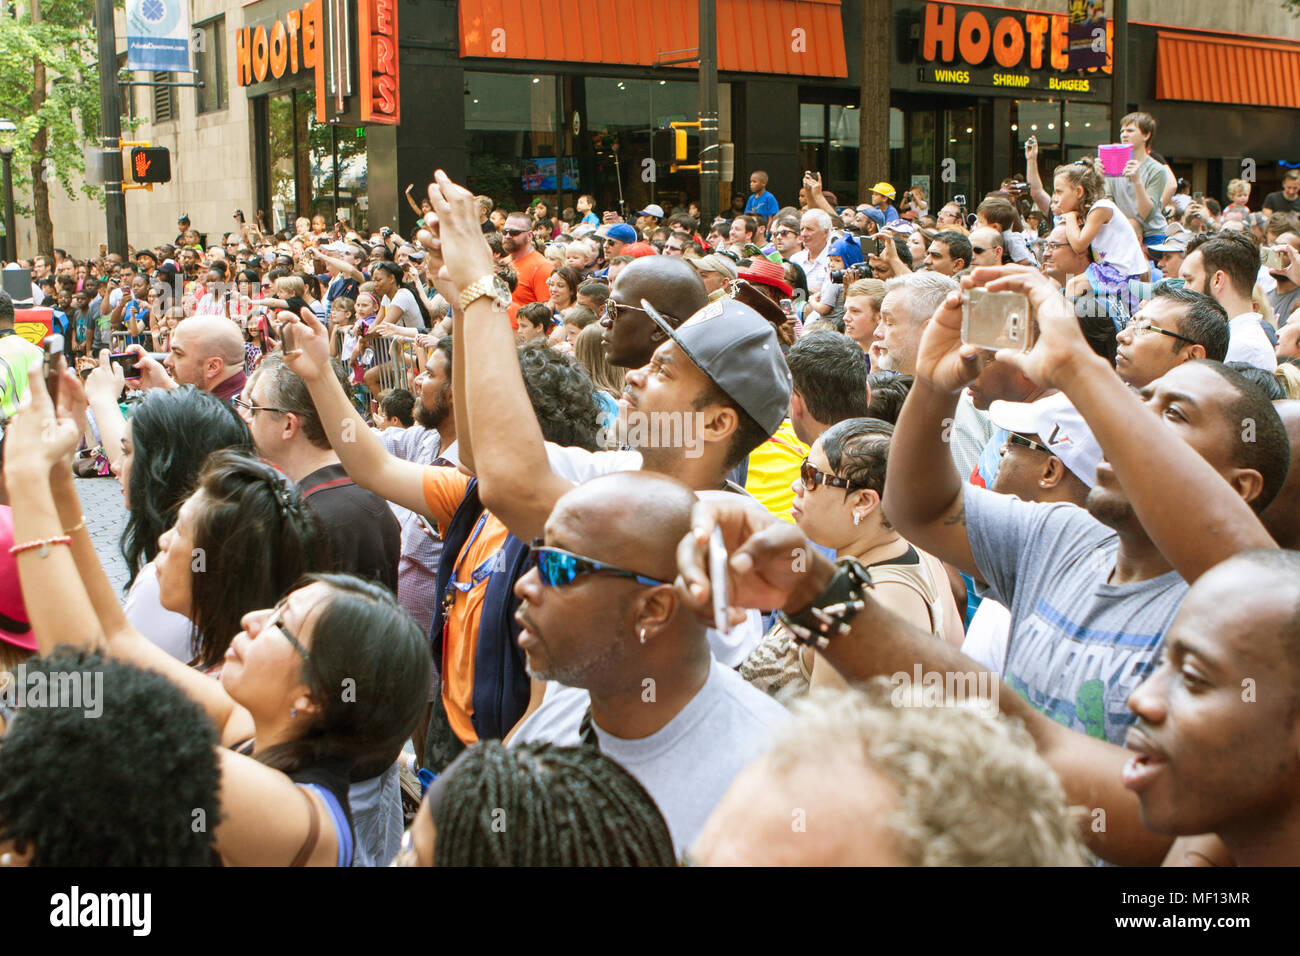 Atlanta, GA, USA - September 5, 2015: Thousands of people gathered on Peachtree Street watch the annual Dragon Con parade in Atlanta, GA. - Stock Image